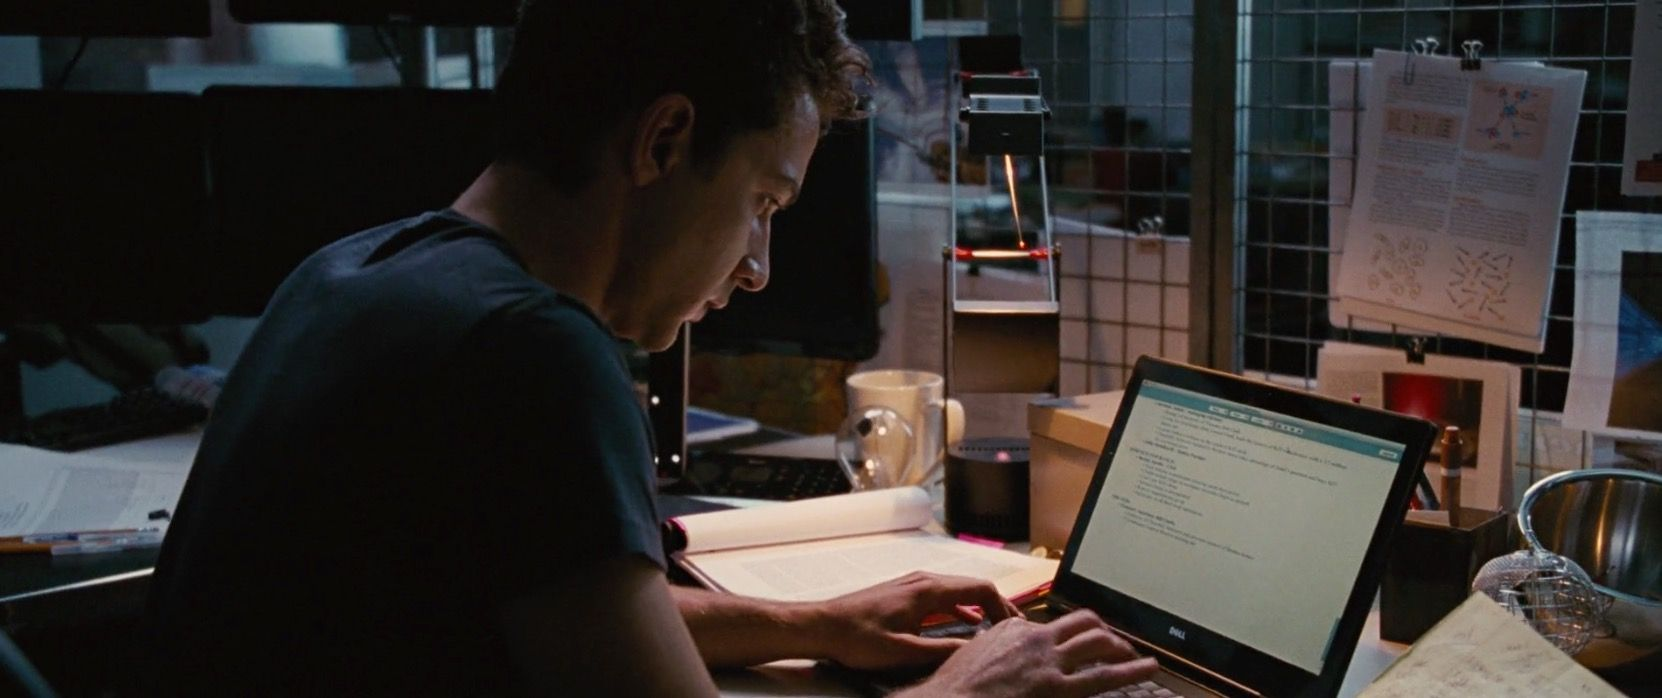 dell laptop used by shia labeouf in wall street money on wall street id=89253